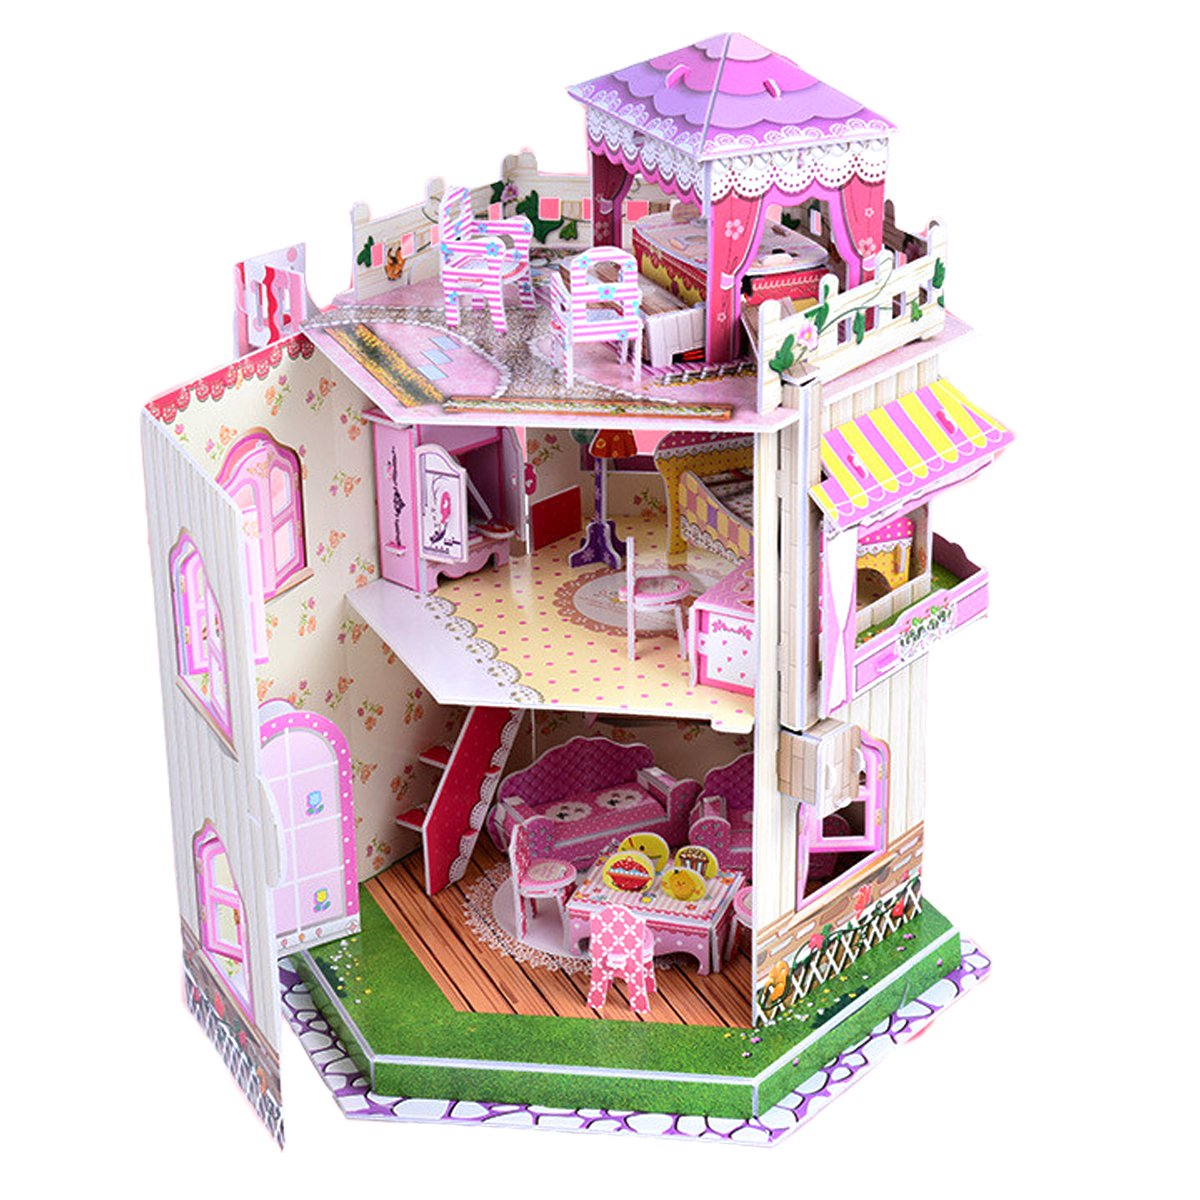 Sourcingbay 3D Puzzle Romantic Dollhouse - Gifts for Girls 8 Years Old and Under Educational Toys Craft for Kids (101 Pieces) China Oem